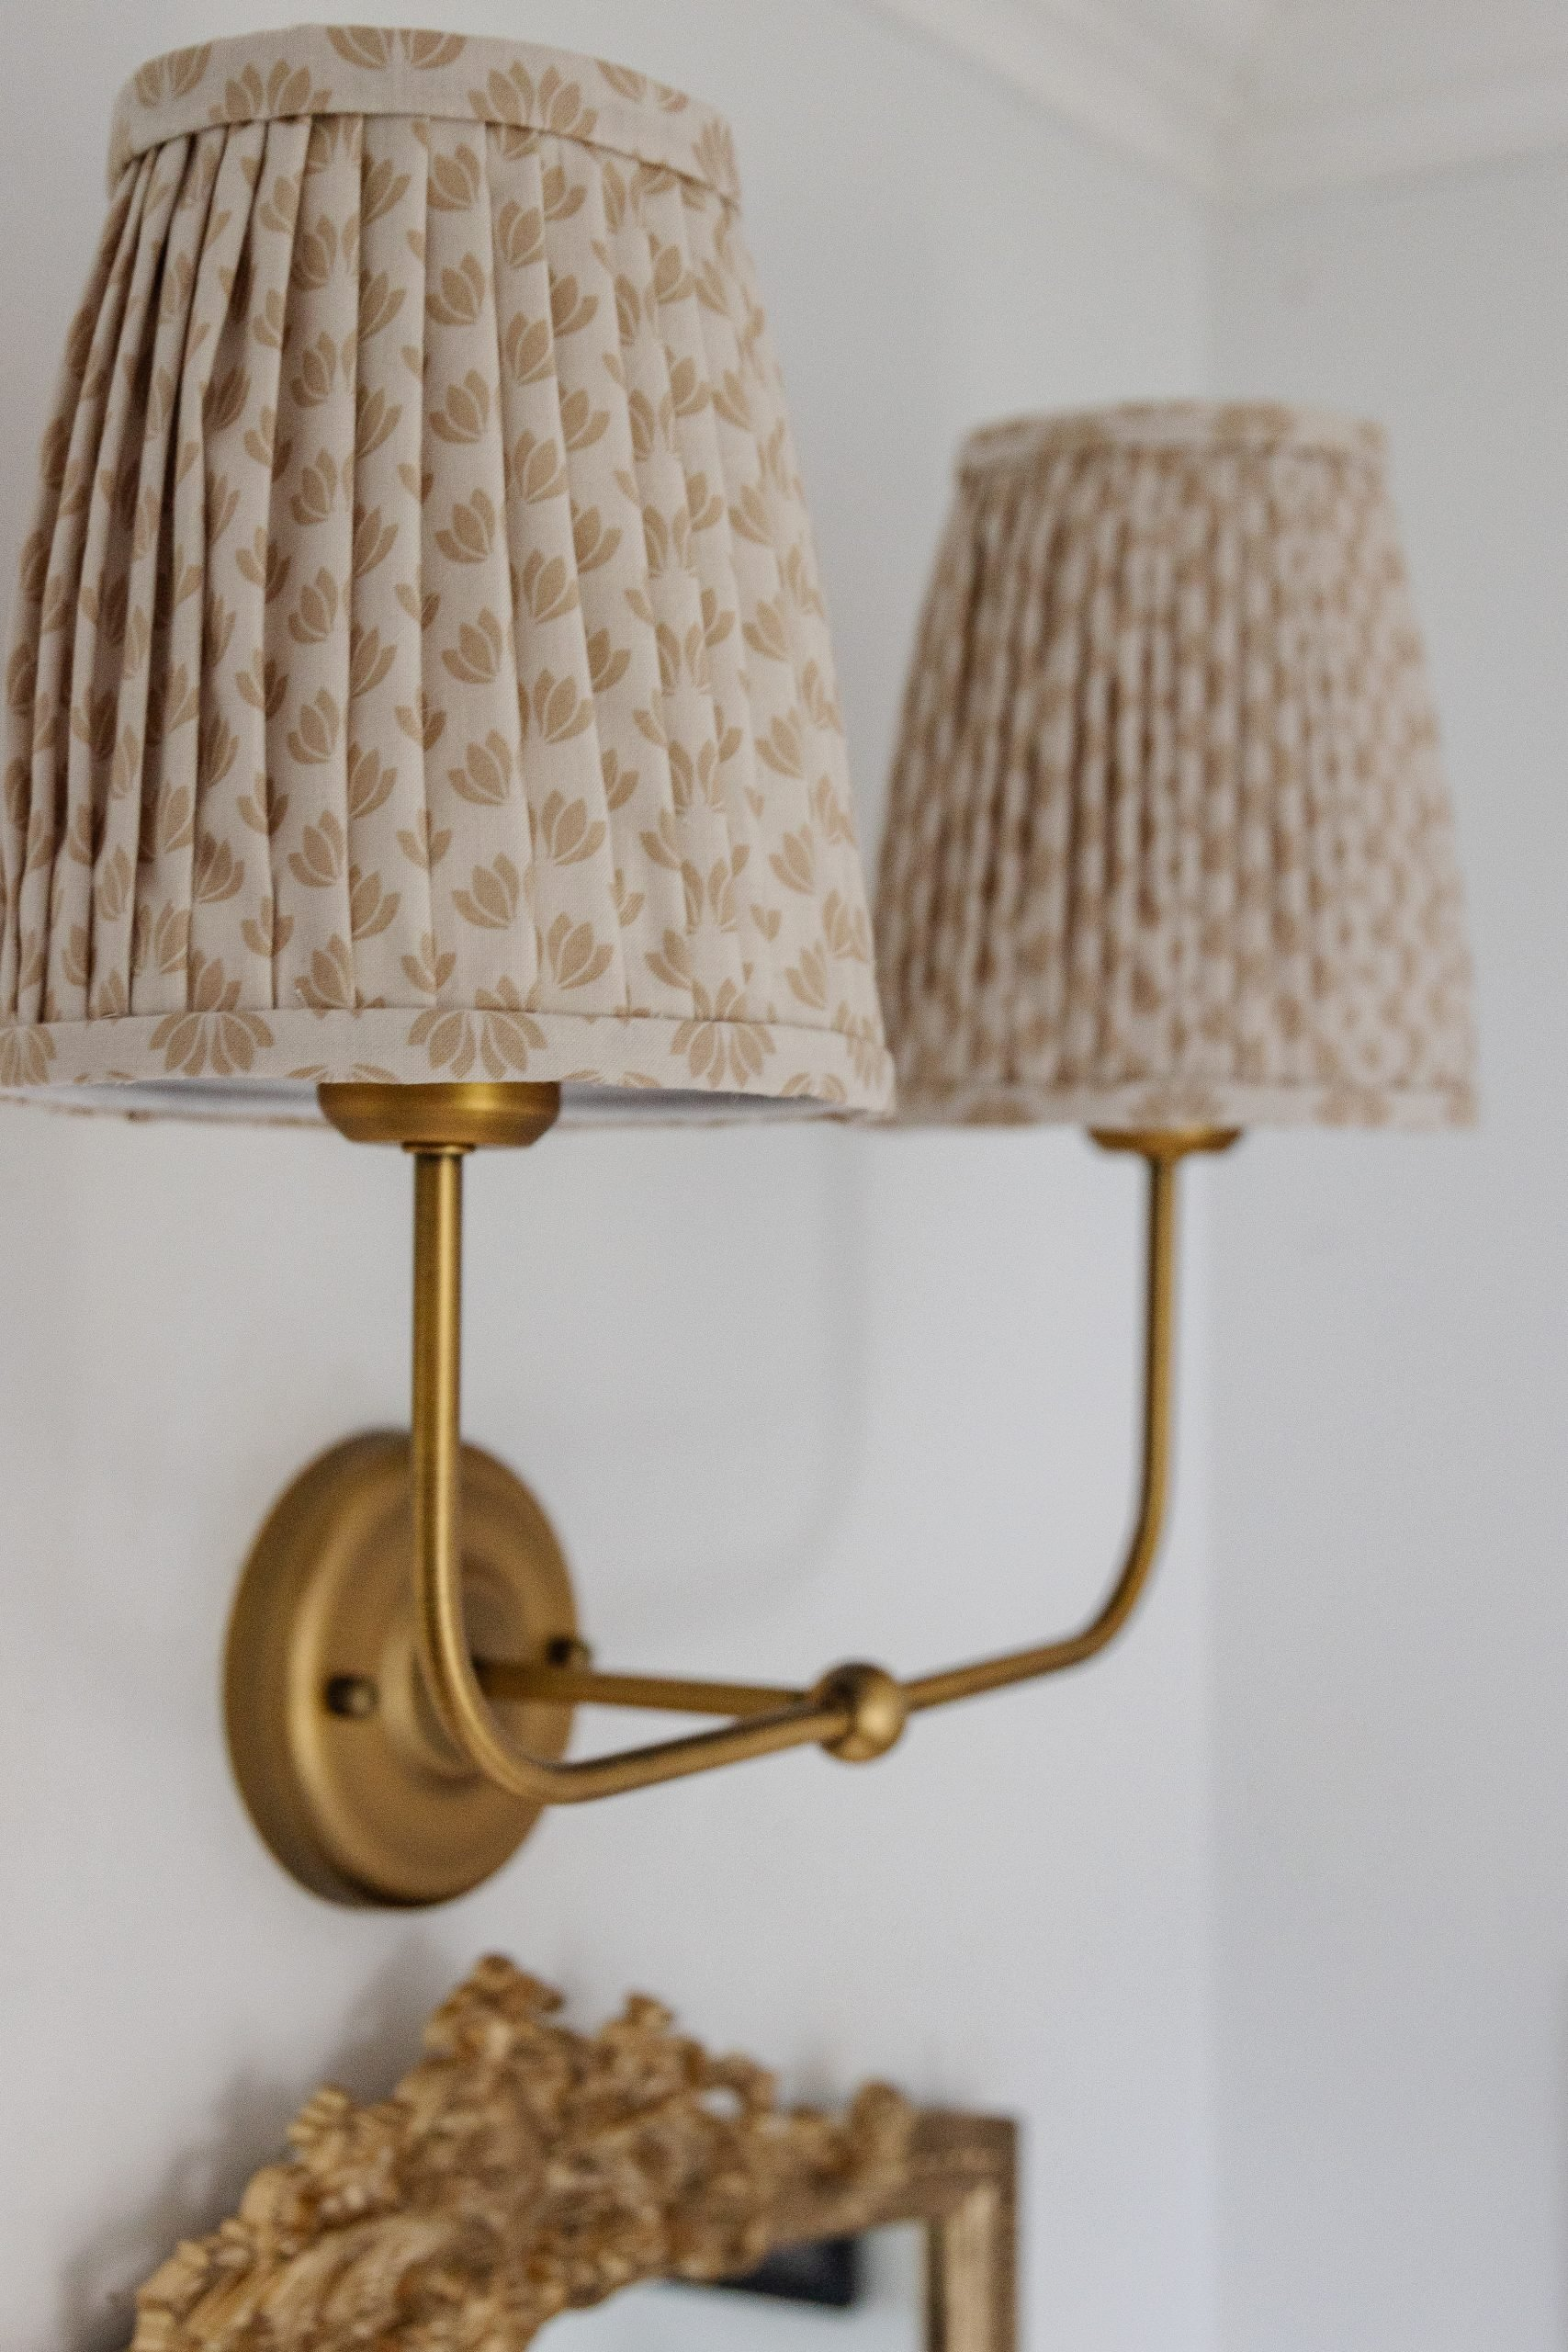 DIY Pleated Lampshades. How To Take a boring lampshade to the next level with this easy no sew tutorial.